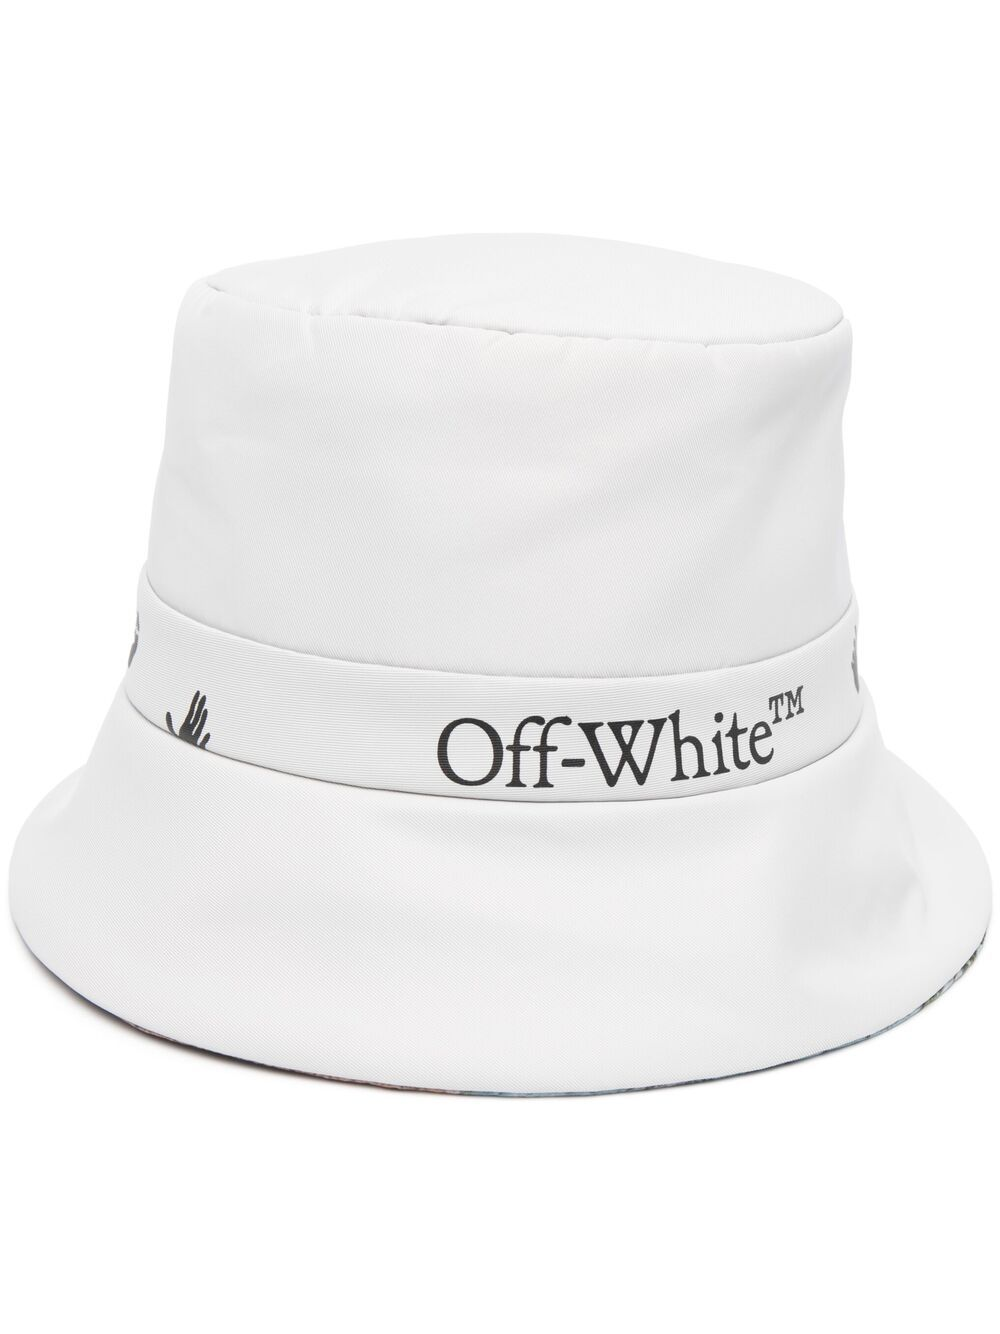 OFF-WHITE LOGO CDC RAIN CAP